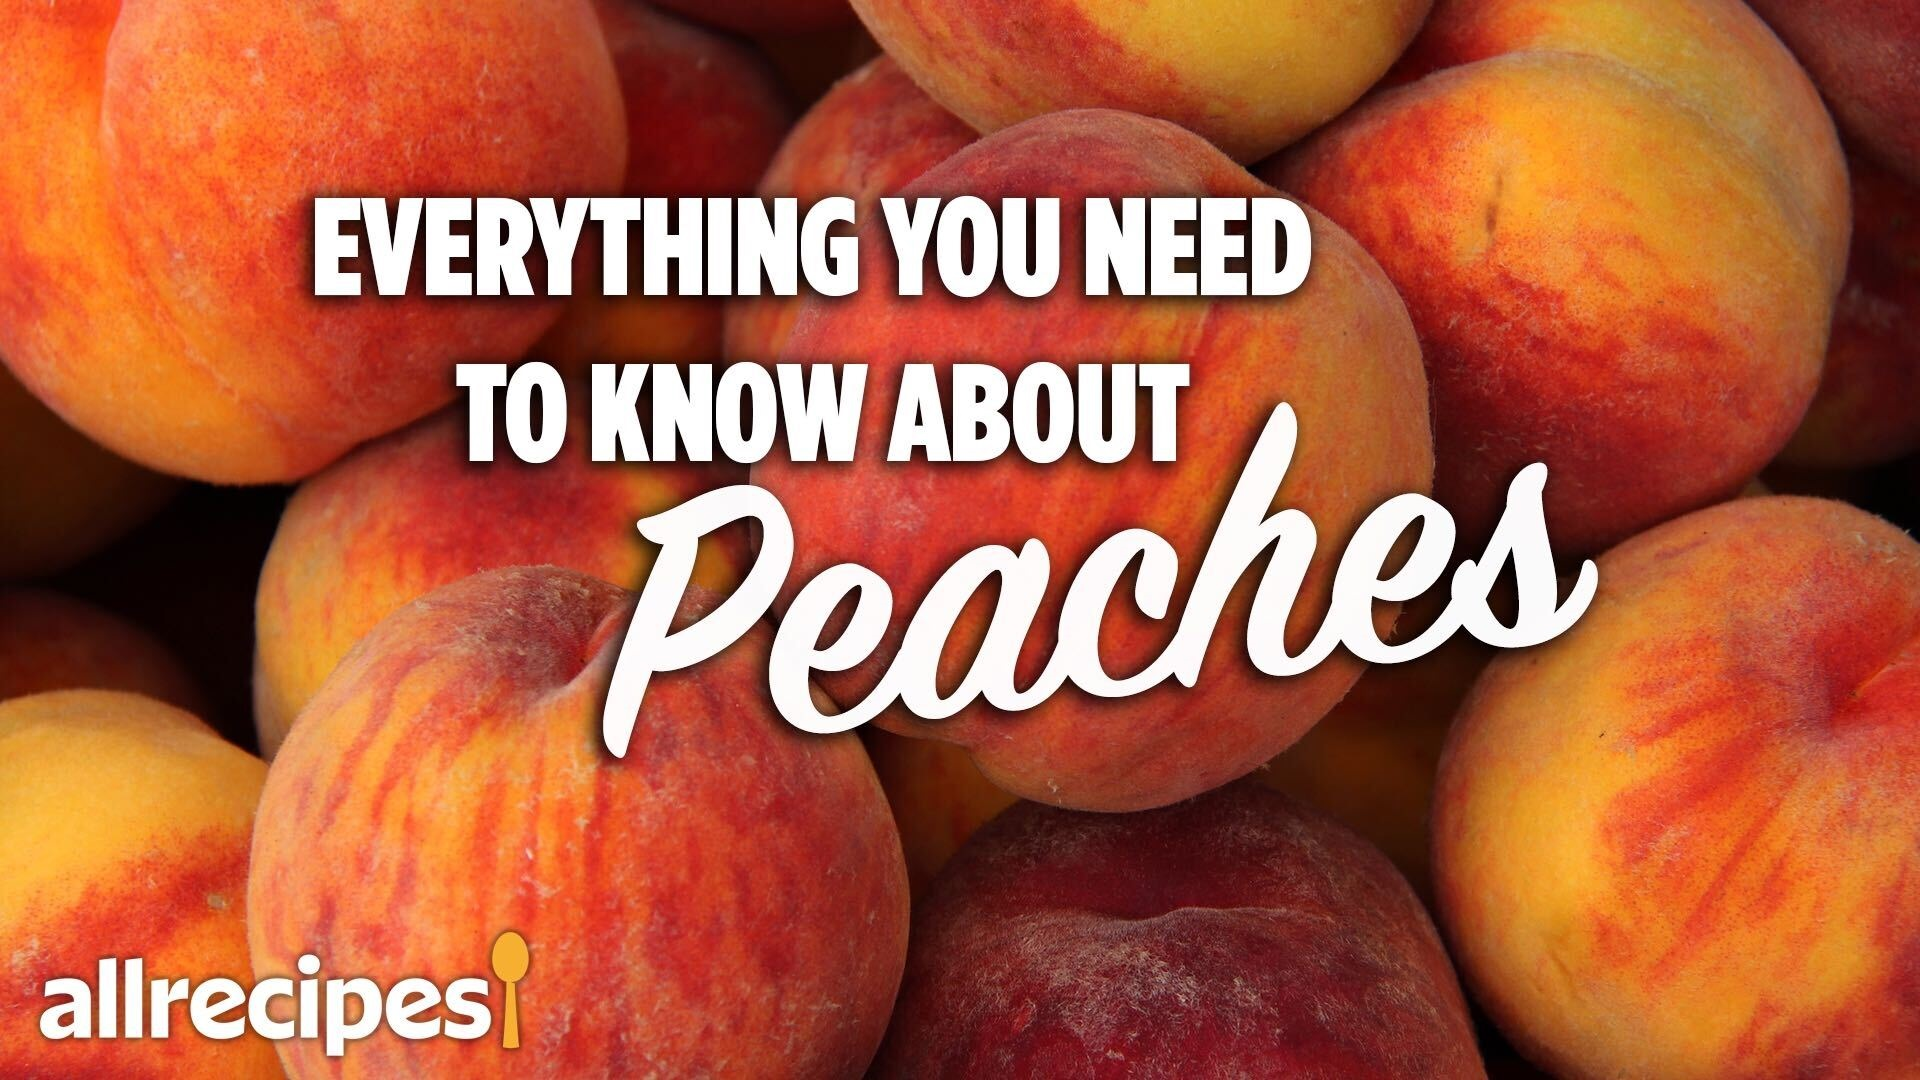 How To Buy Store And Eat Peaches Allrecipes,Wheat Pennies Value Chart